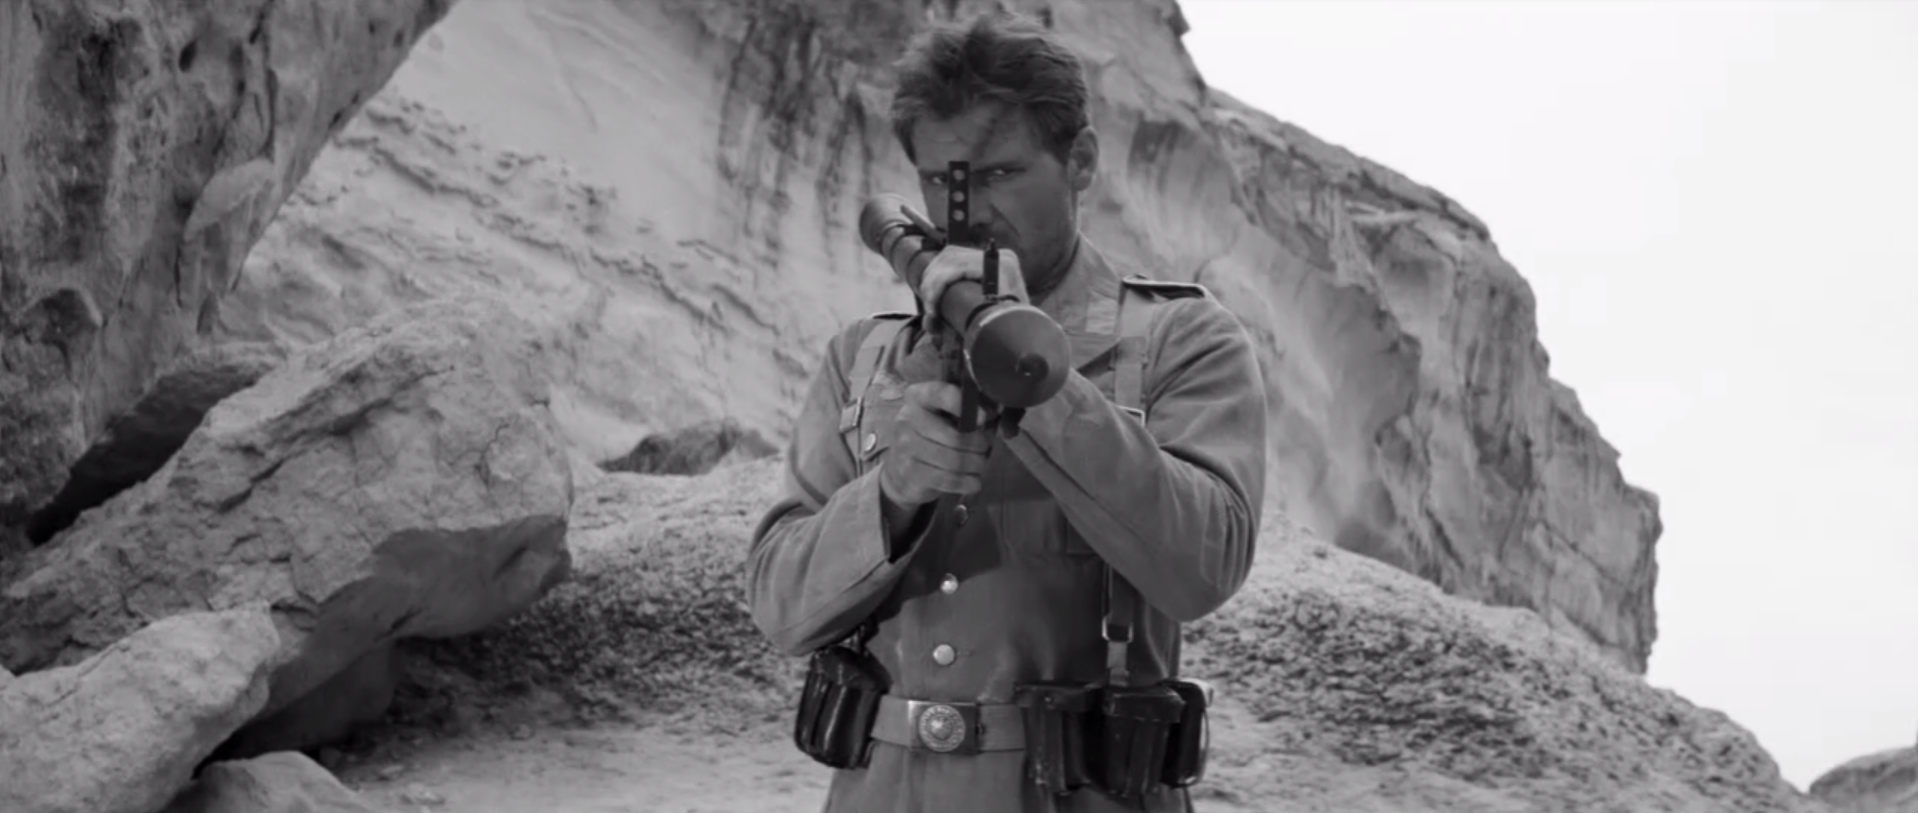 Steven Soderbergh Made Raiders Of The Lost Ark Into A Silent Film